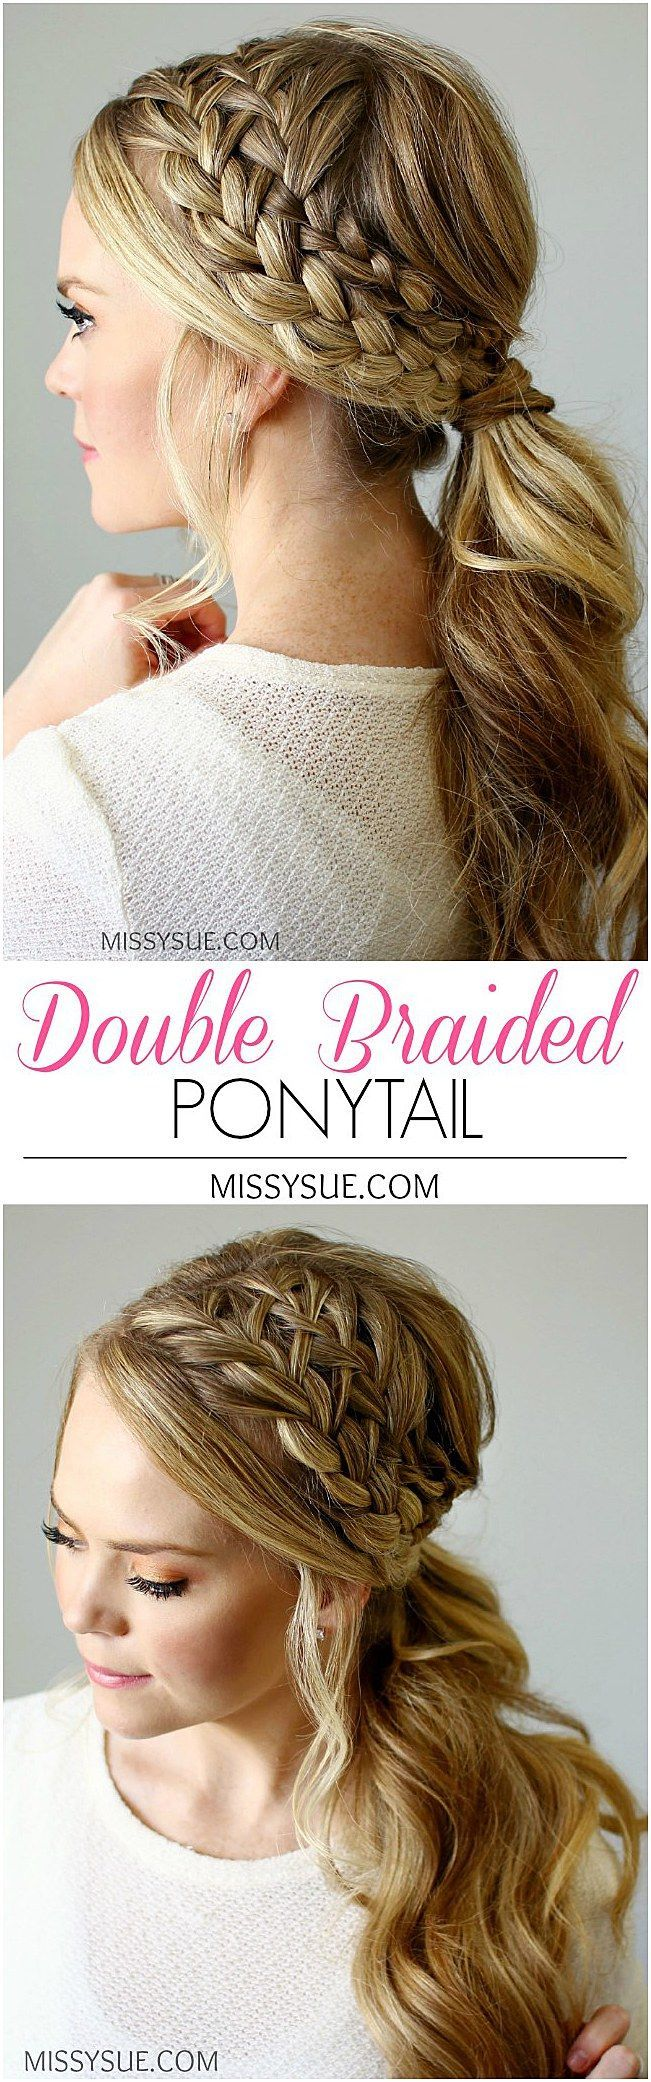 Every girl loves braid hairstyles braided hairs look so charming